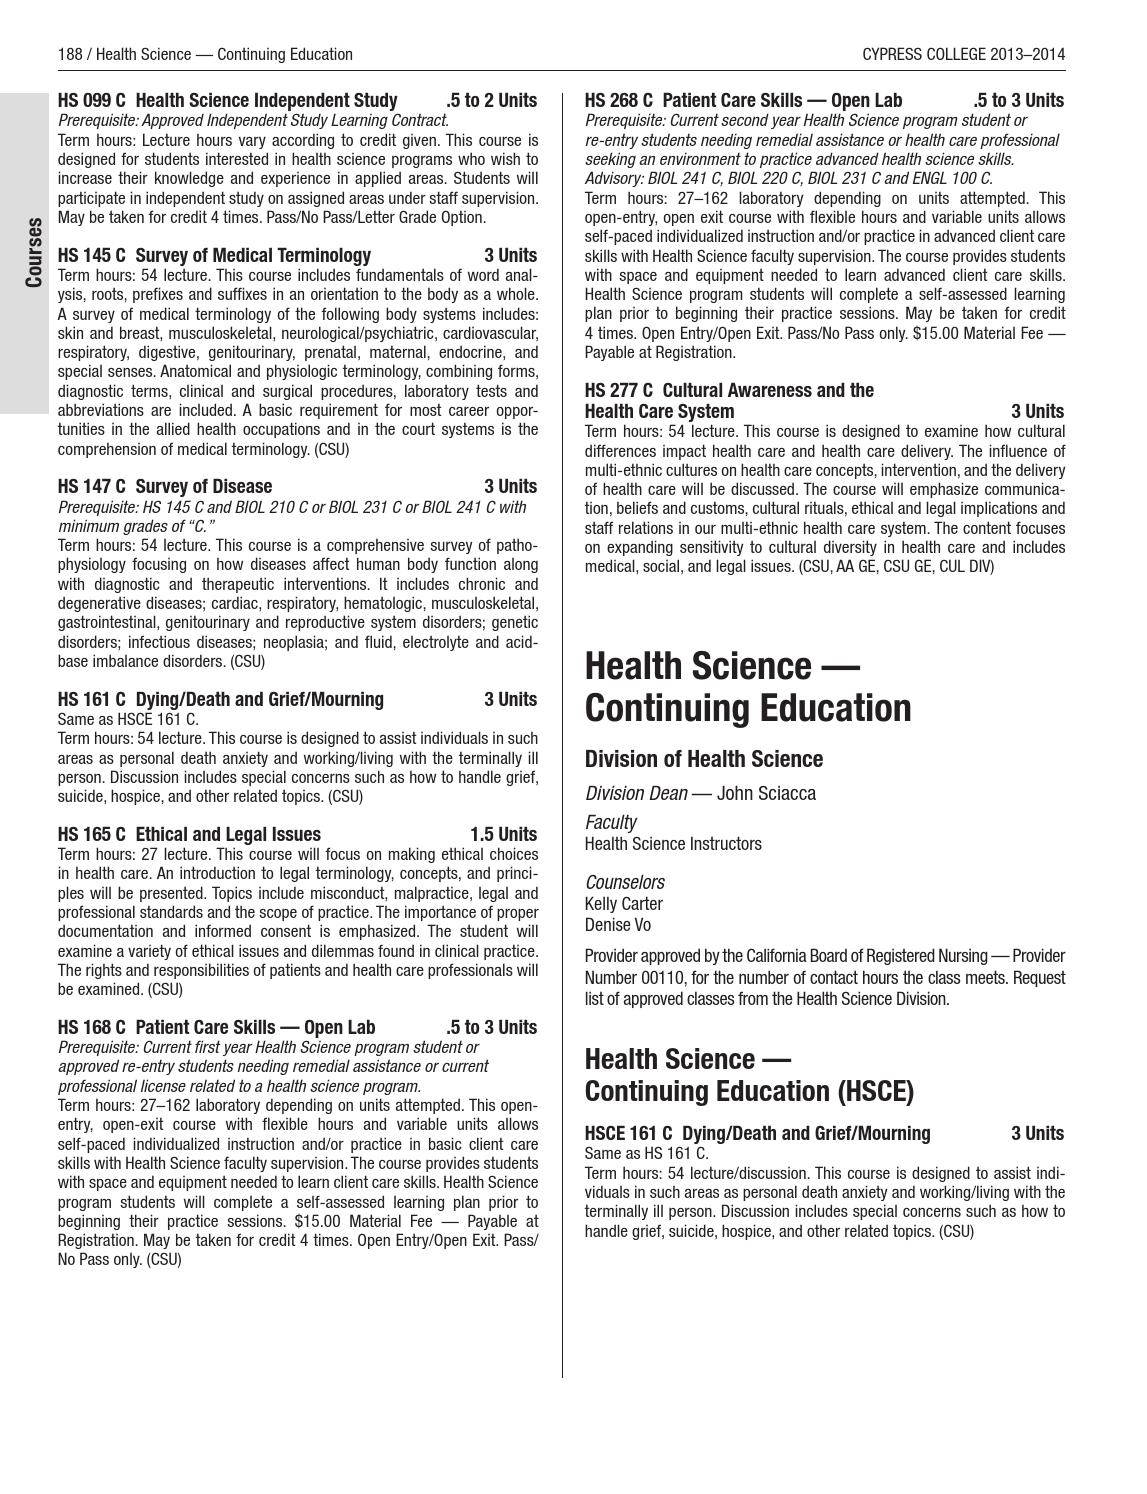 health related topics for discussion